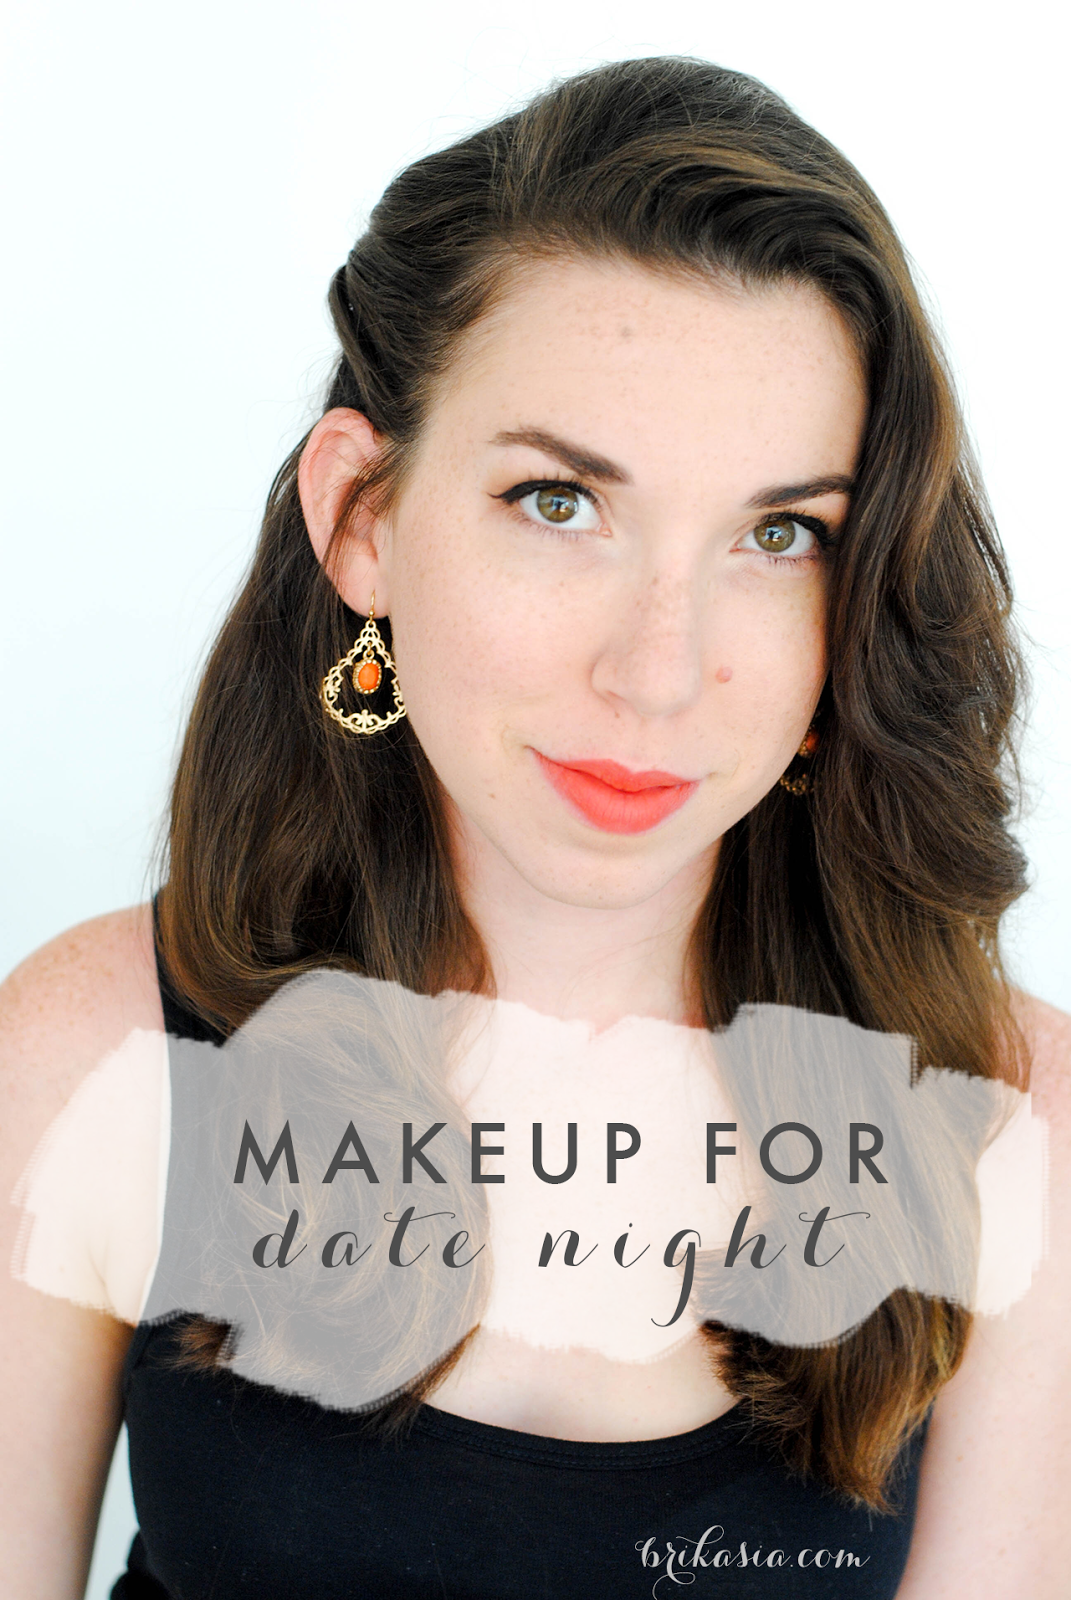 date night makeup tutorial, what makeup to wear for going out on a date, anniversary party makeup tutorial, cateye makeup look, glitter